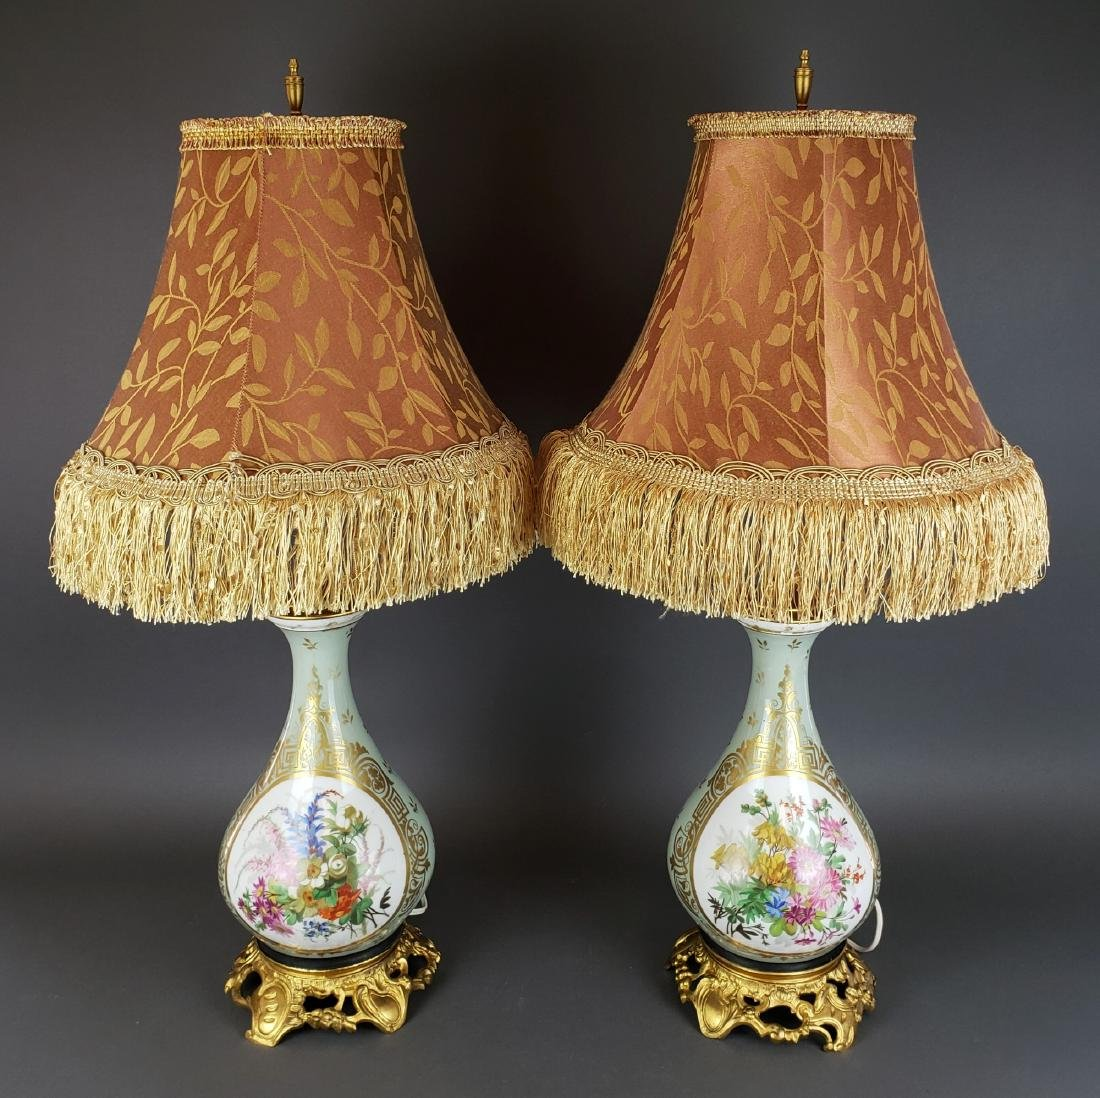 Pair of French Sevres Porcelain & Bronze Lamps, 19th C.